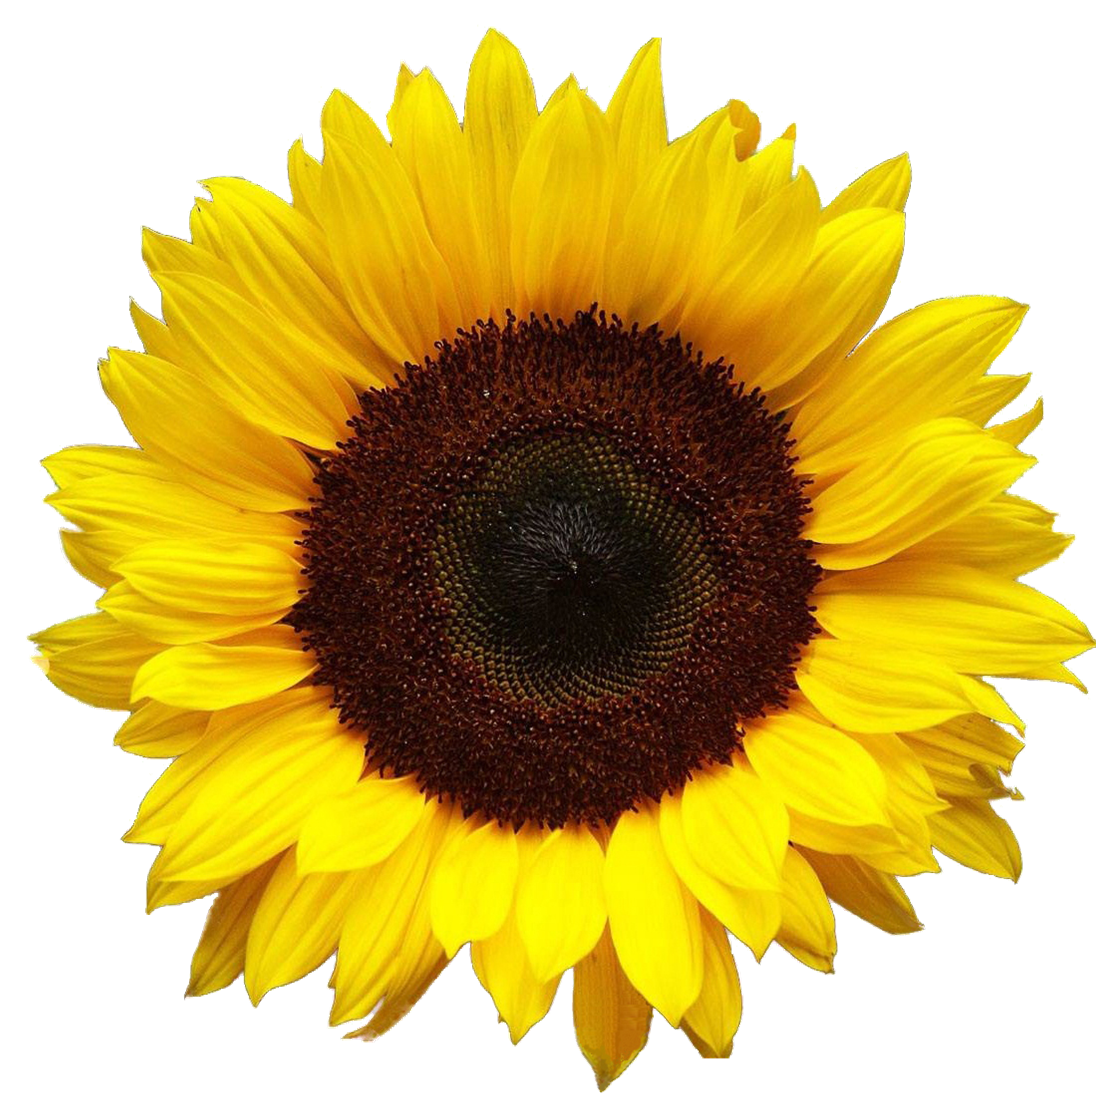 Sunflower Hd PNG Image